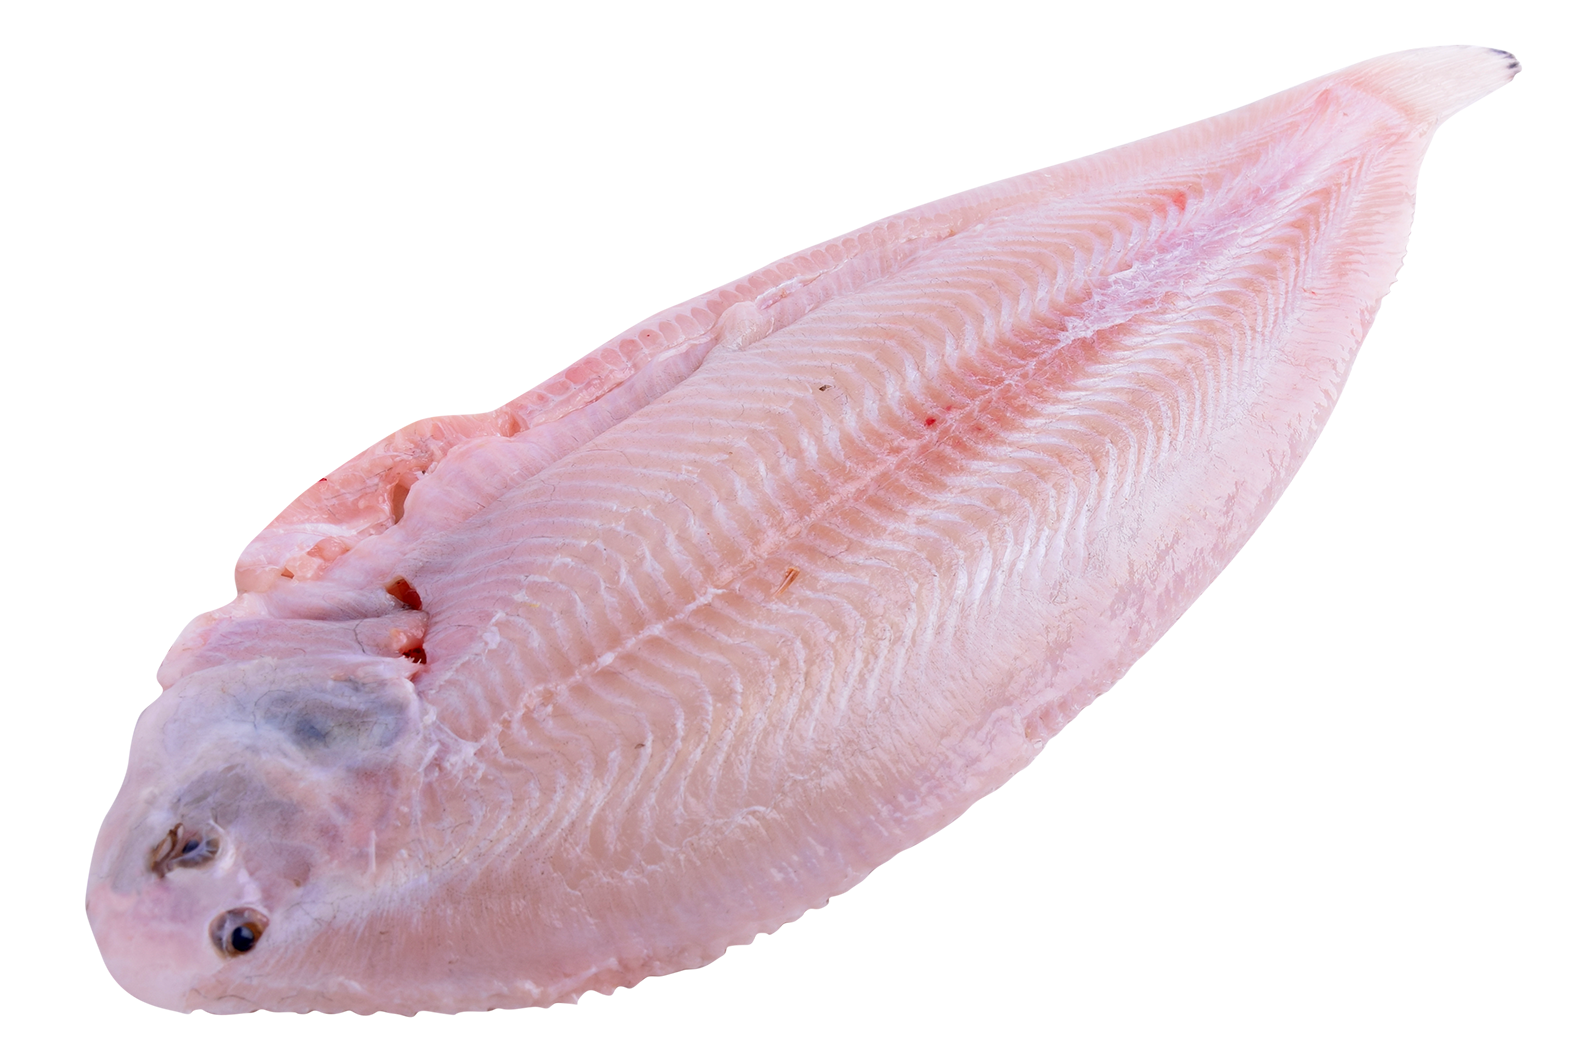 Productafbeelding DOVER SOLE SKINLESS SIZE 300-350GR